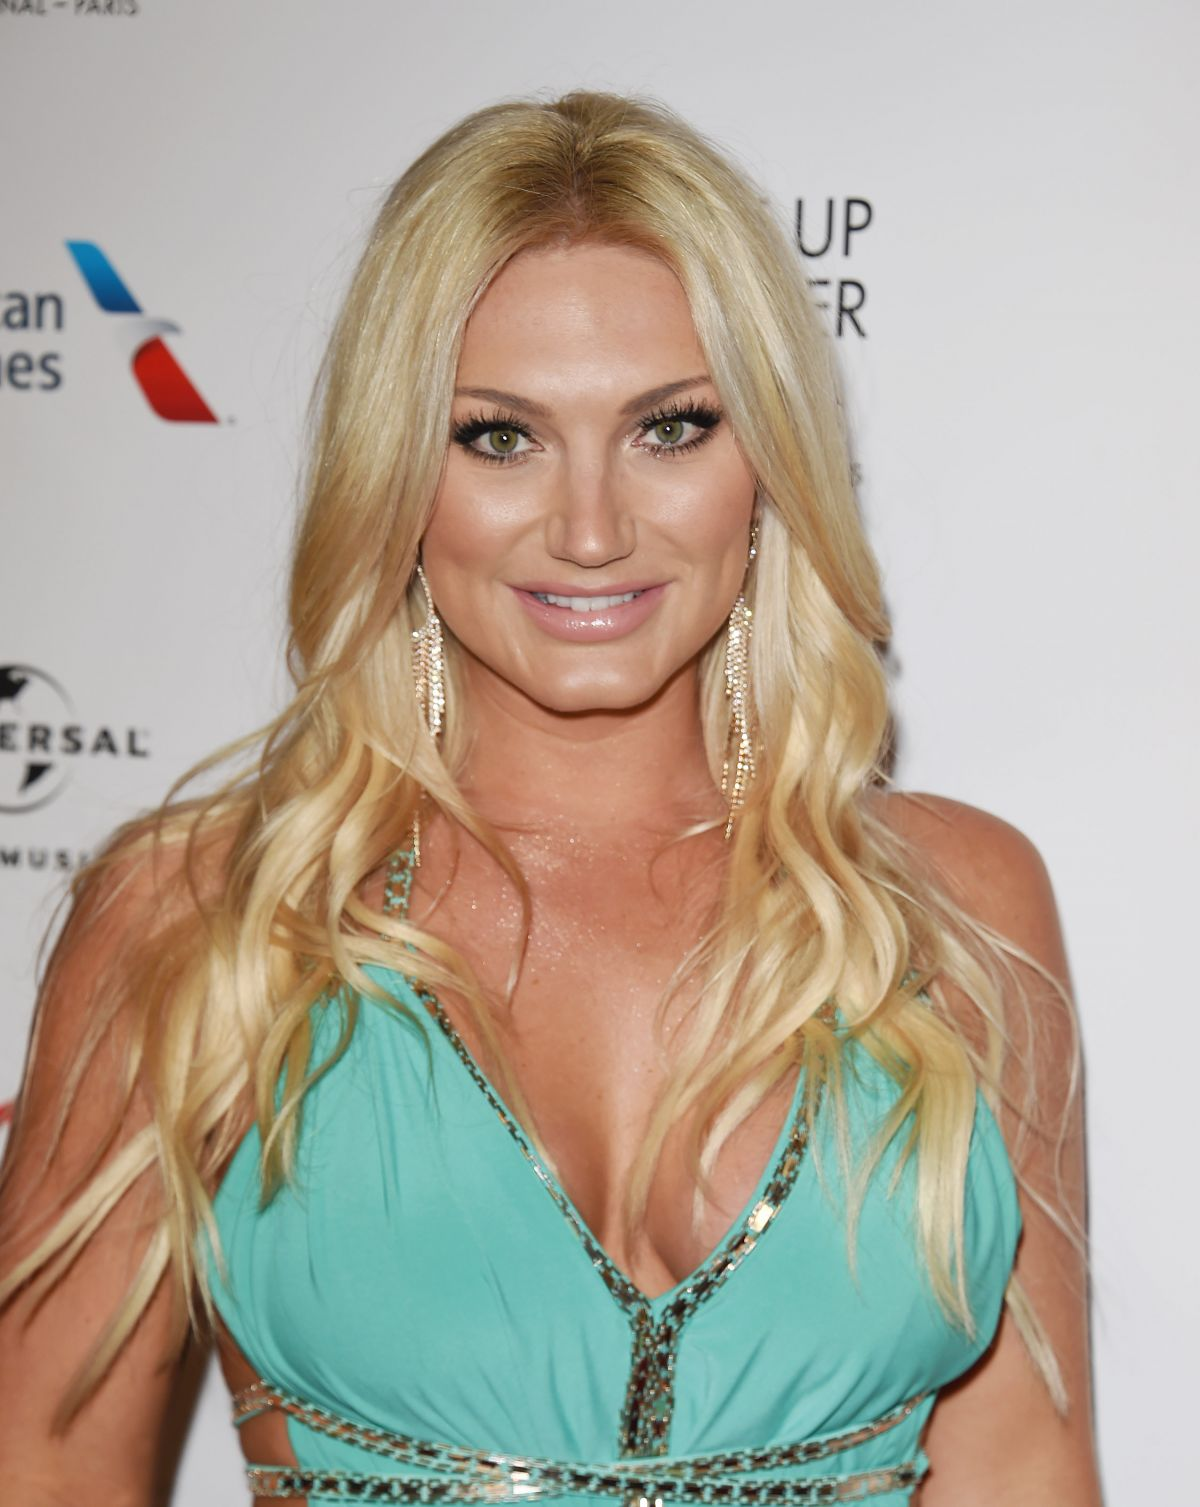 BROOKE HOGAN at Universal Music Group Grammy Afterparty in Los Angeles 02/12/2017